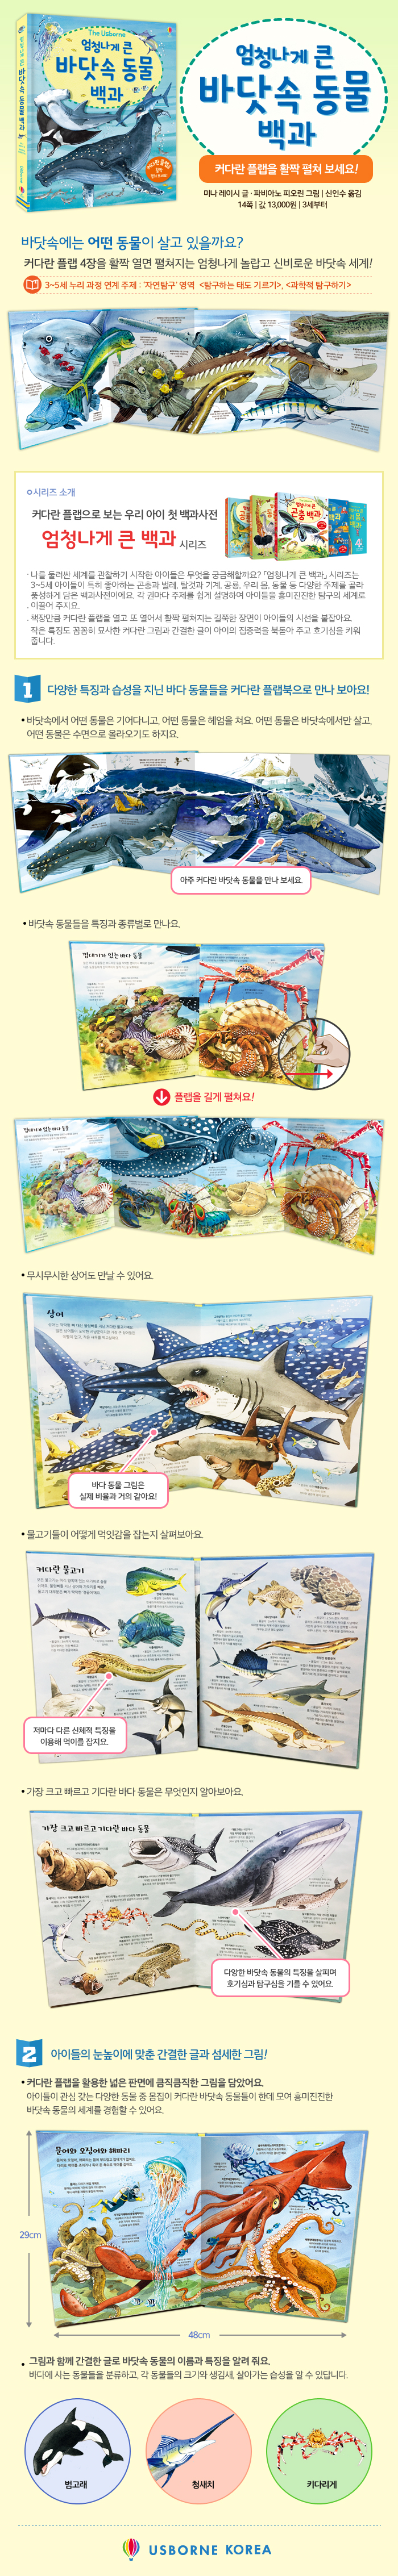 big_book_of_sea_creatures